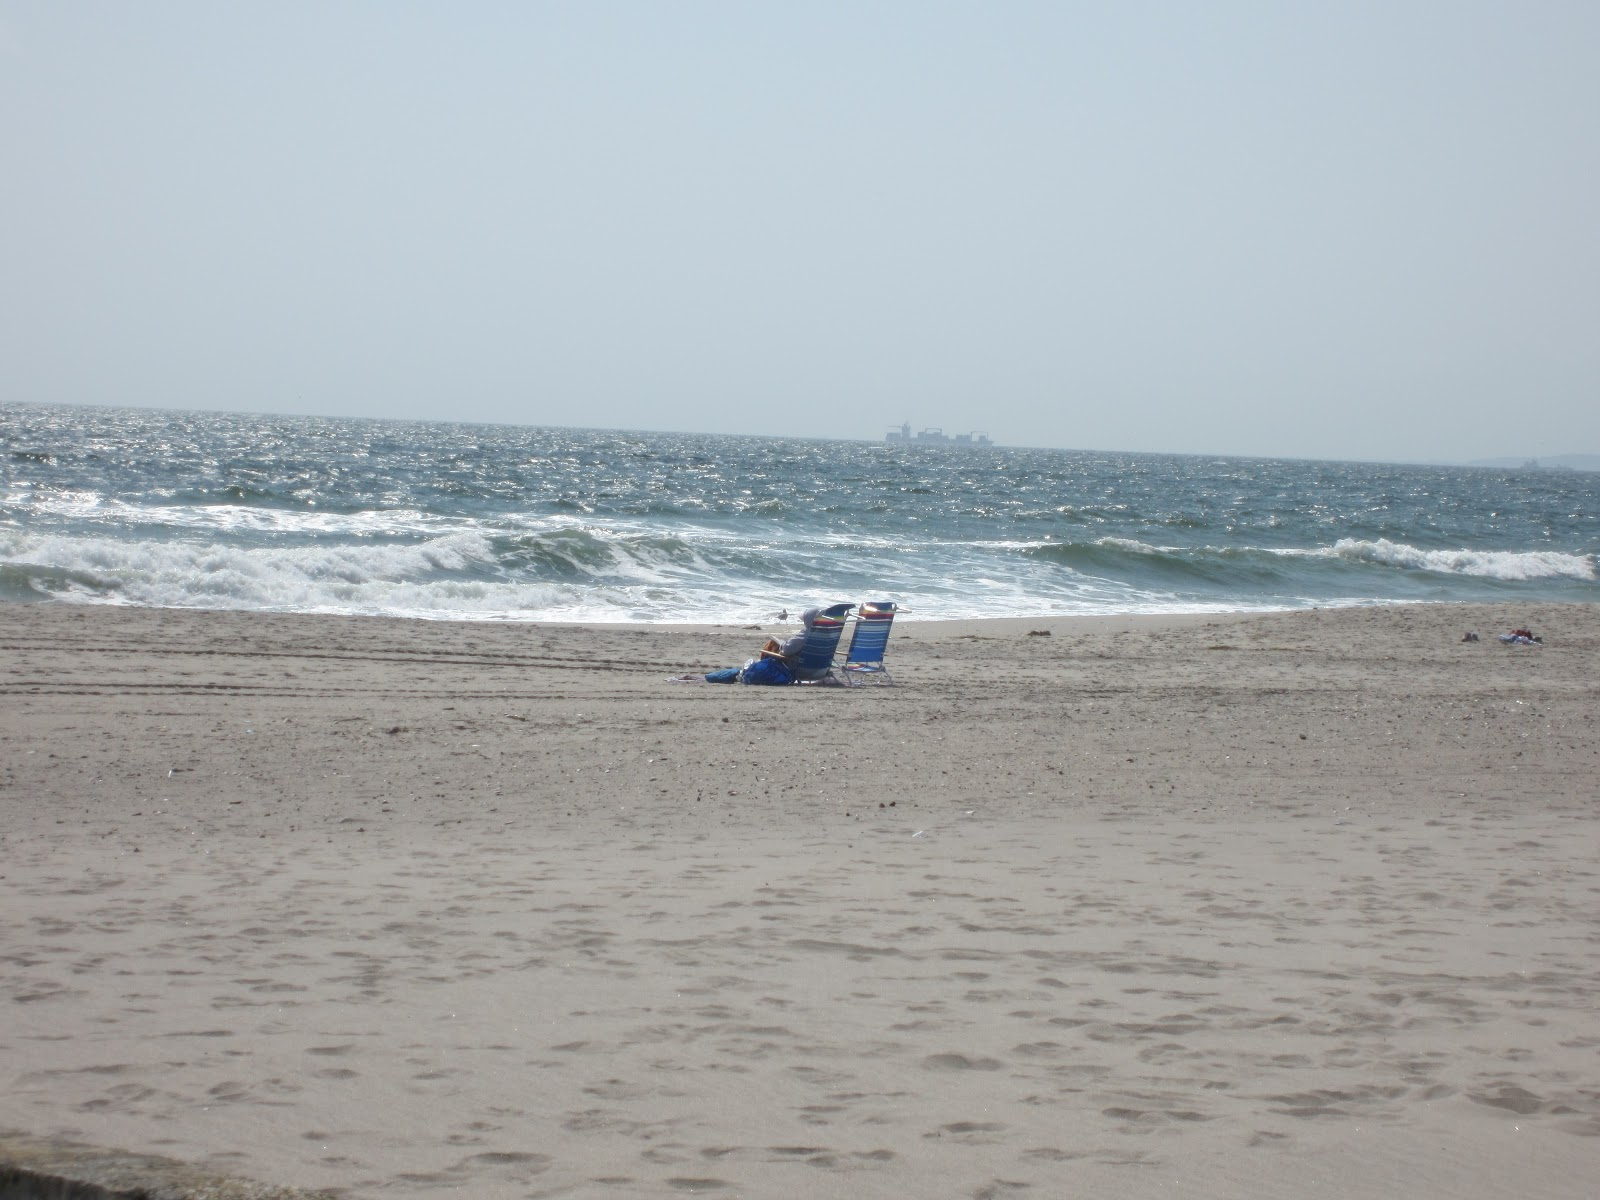 More Dark Times: Rockaway Beach, Our Home Away From Home